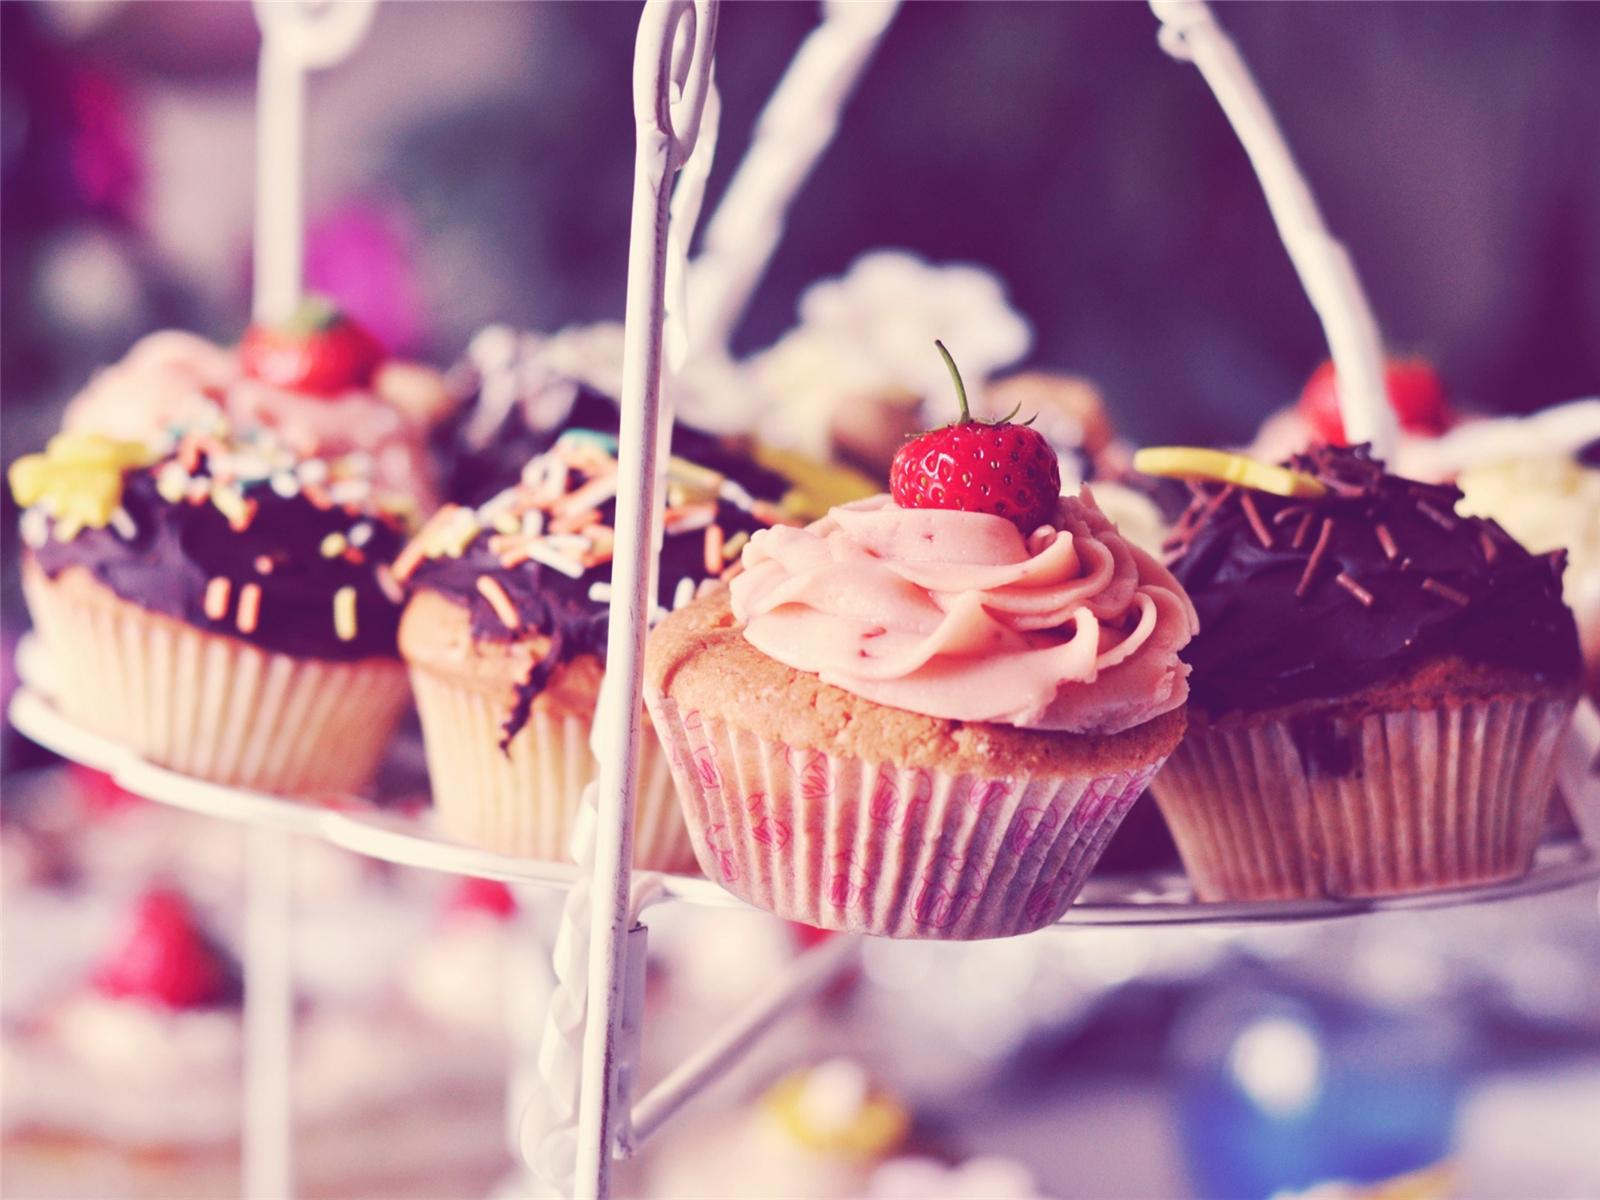 Delicious Cakes Wallpapers